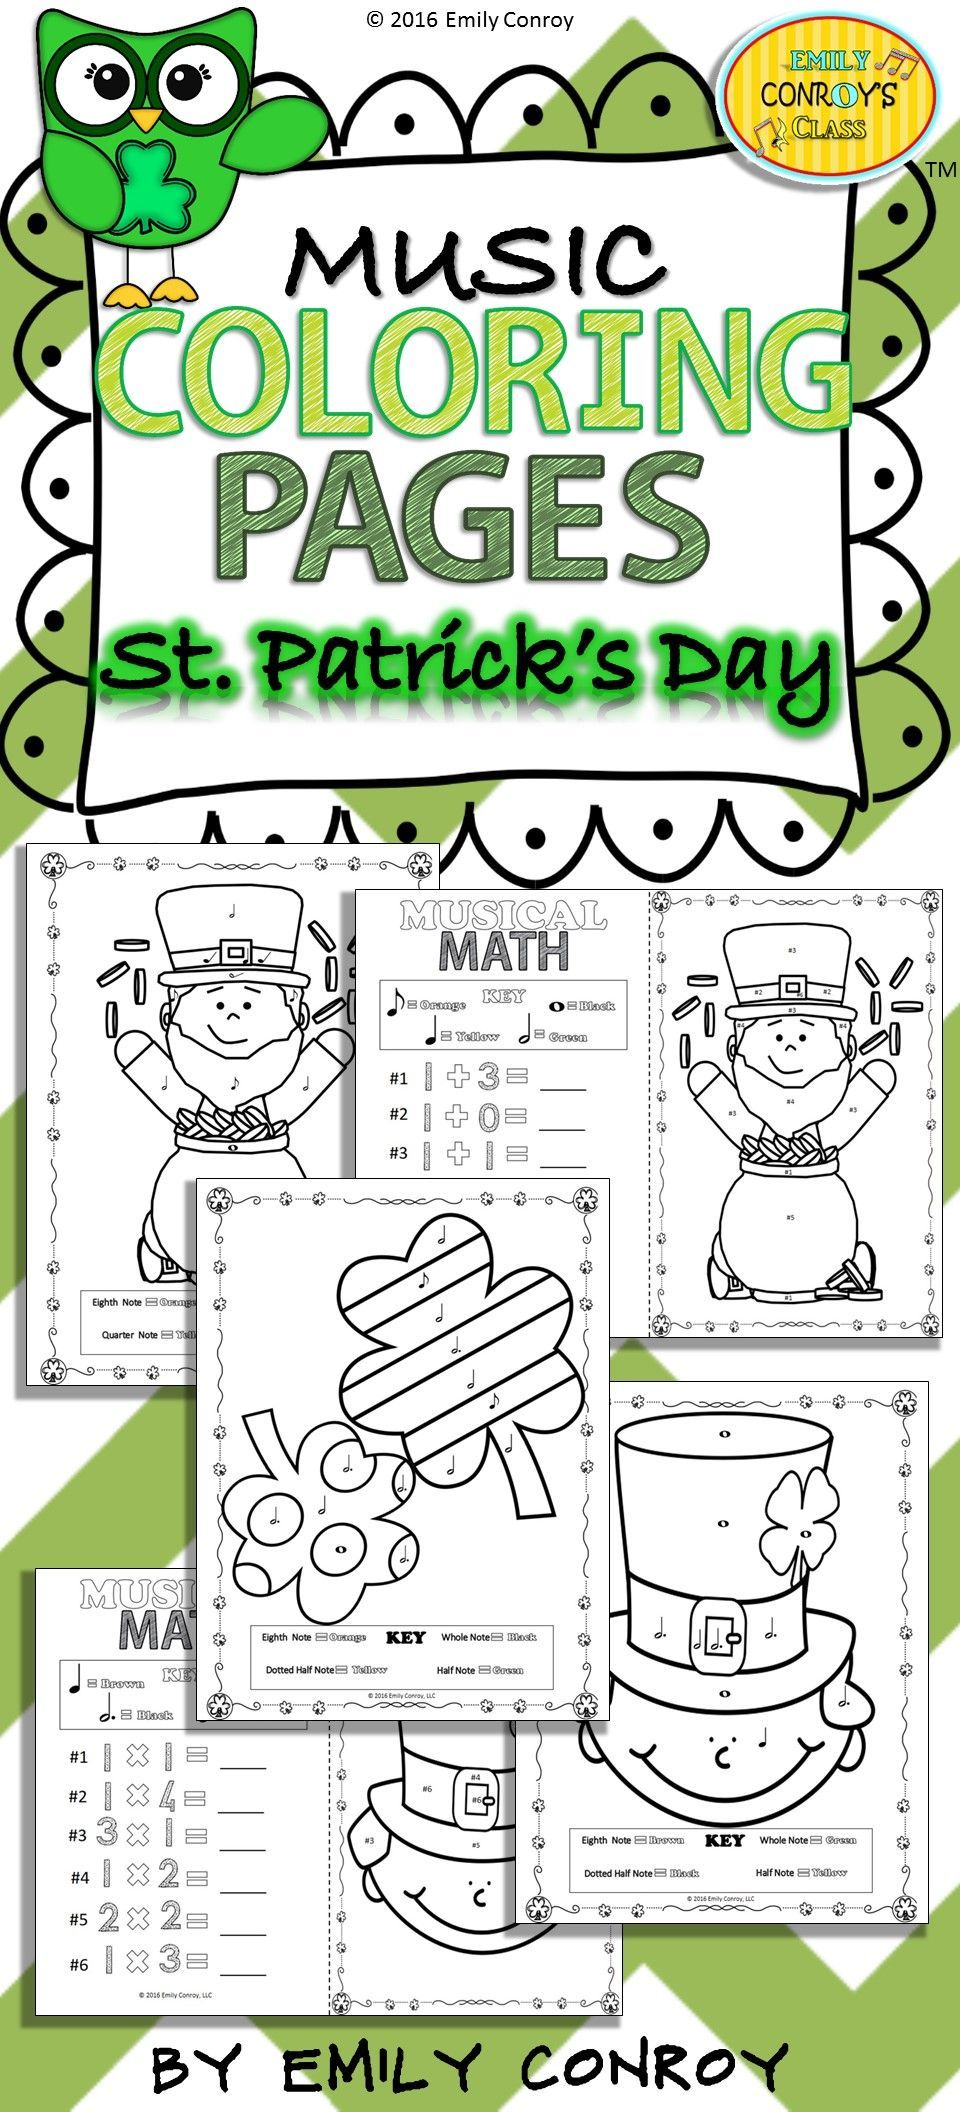 Looking for ways to integrate math into your elementary music lessons these coloring pages require